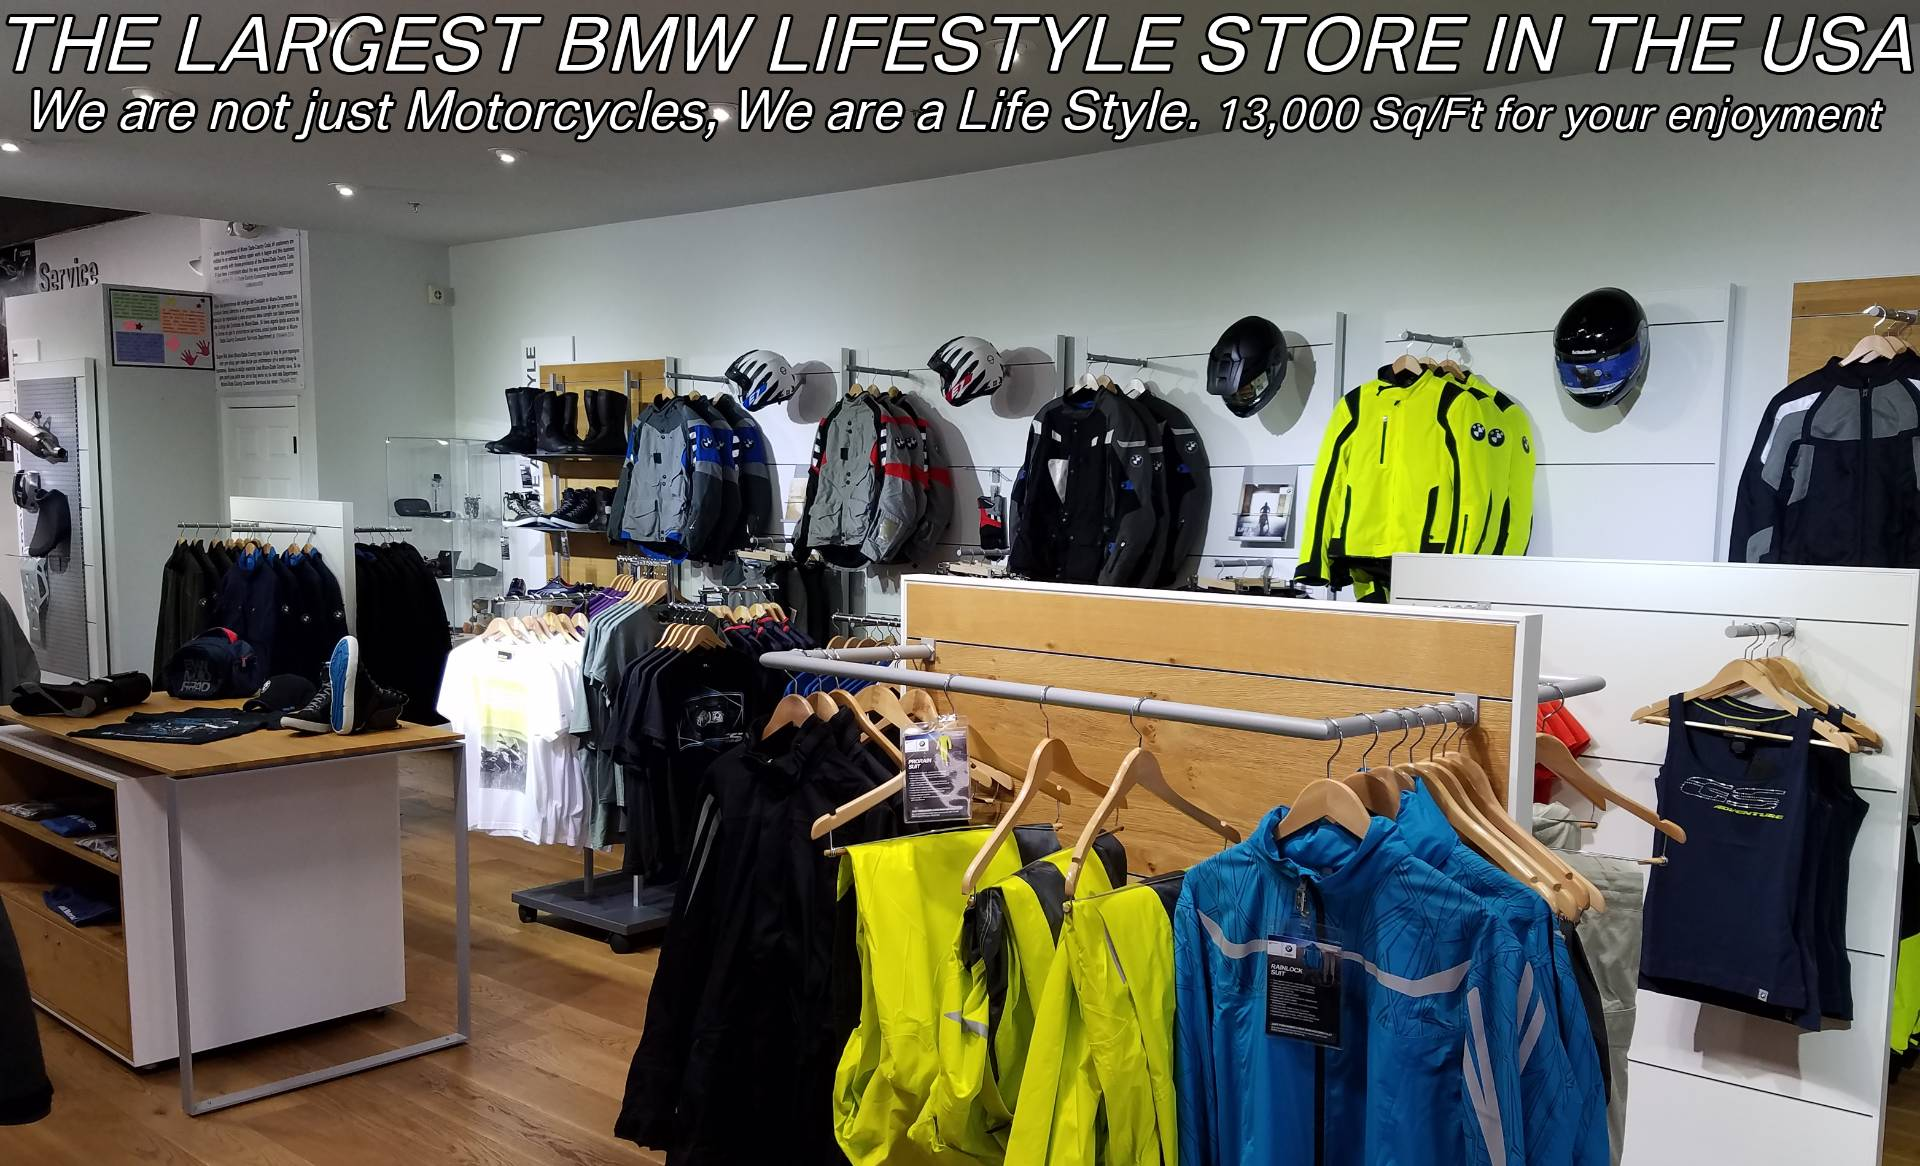 Used 2017 BMW R nine T For Sale, Pre owned BMW R nineT For Sale, BMW Motorcycle RnineT, BMW Motorcycles of Miami, Motorcycles of Miami, Motorcycles Miami - Photo 57